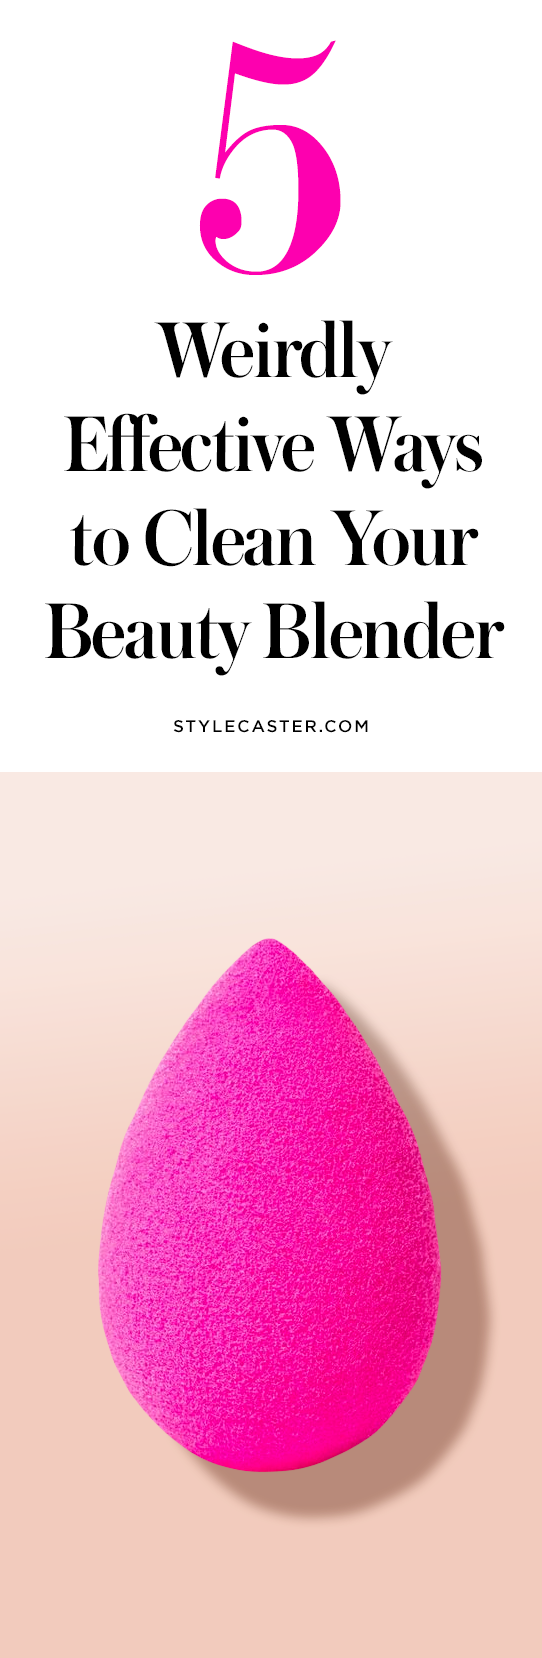 8 Weirdly Effective Ways to Clean Your Beauty Blender  StyleCaster